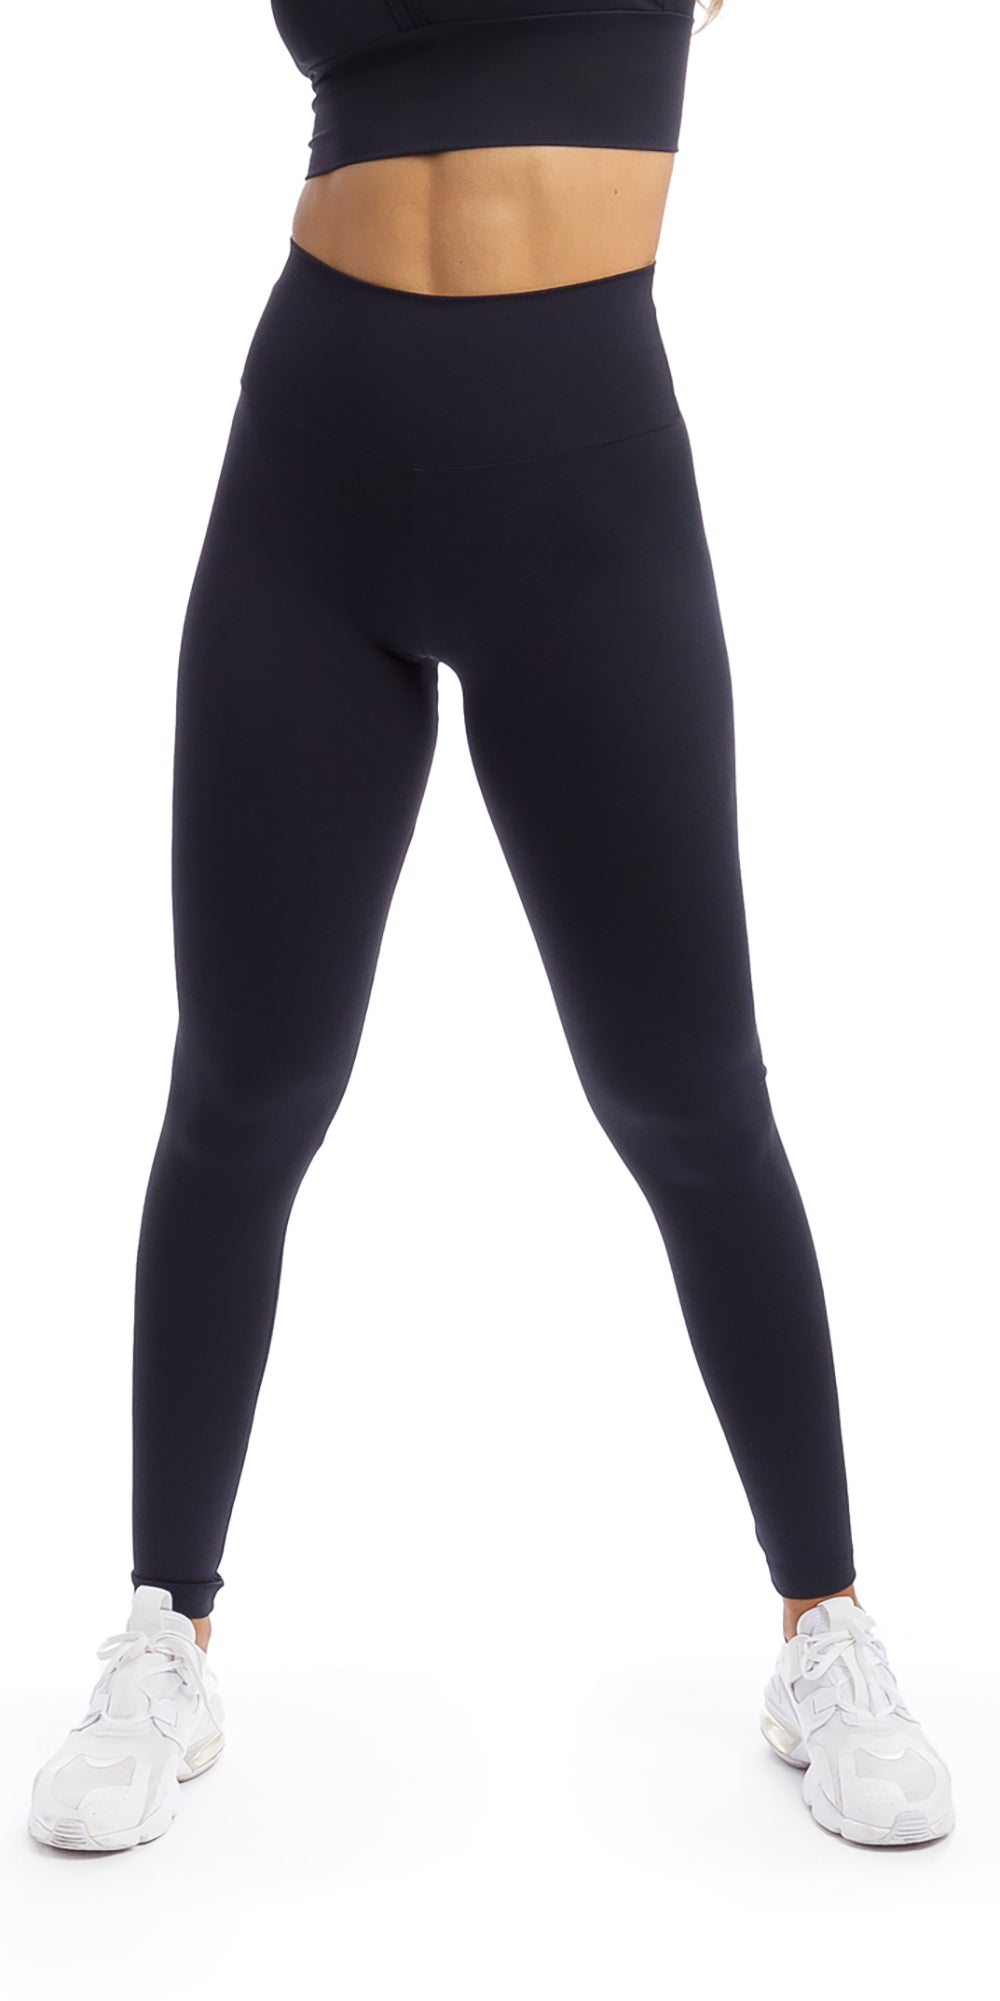 Girl wearing midnight body luxe ultra high waist leggings & matching racer bra